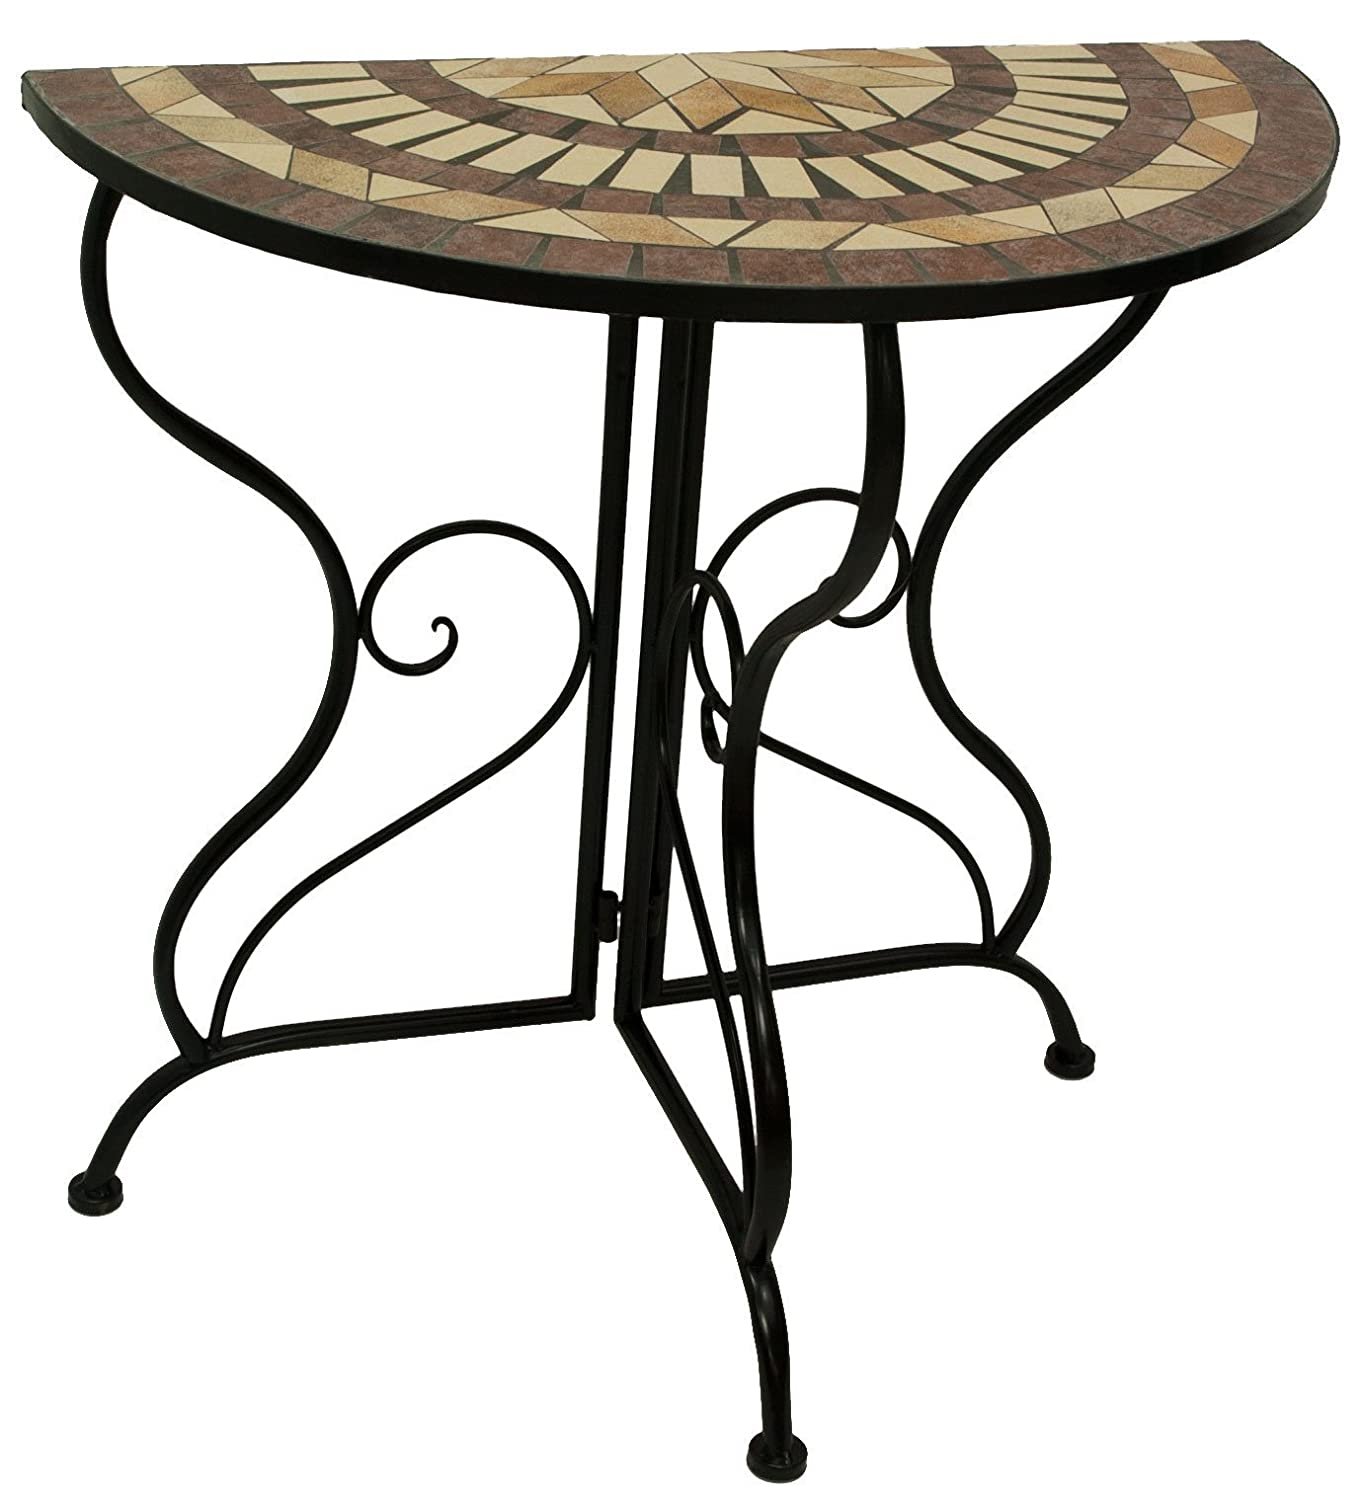 D64066 Console Mosaic Table/Wrought Iron legs